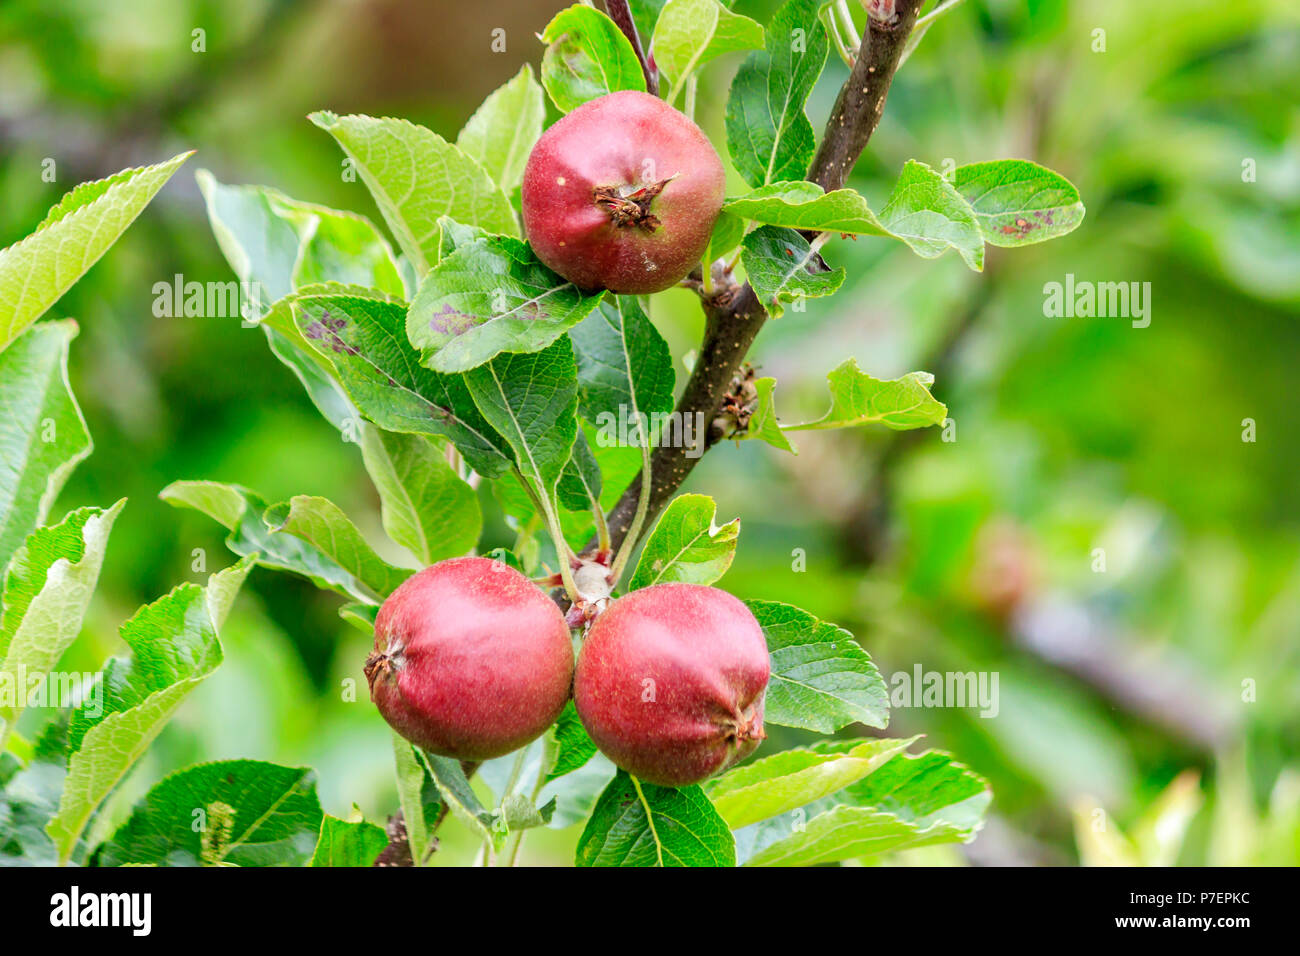 3 small red apples on branches - Stock Image